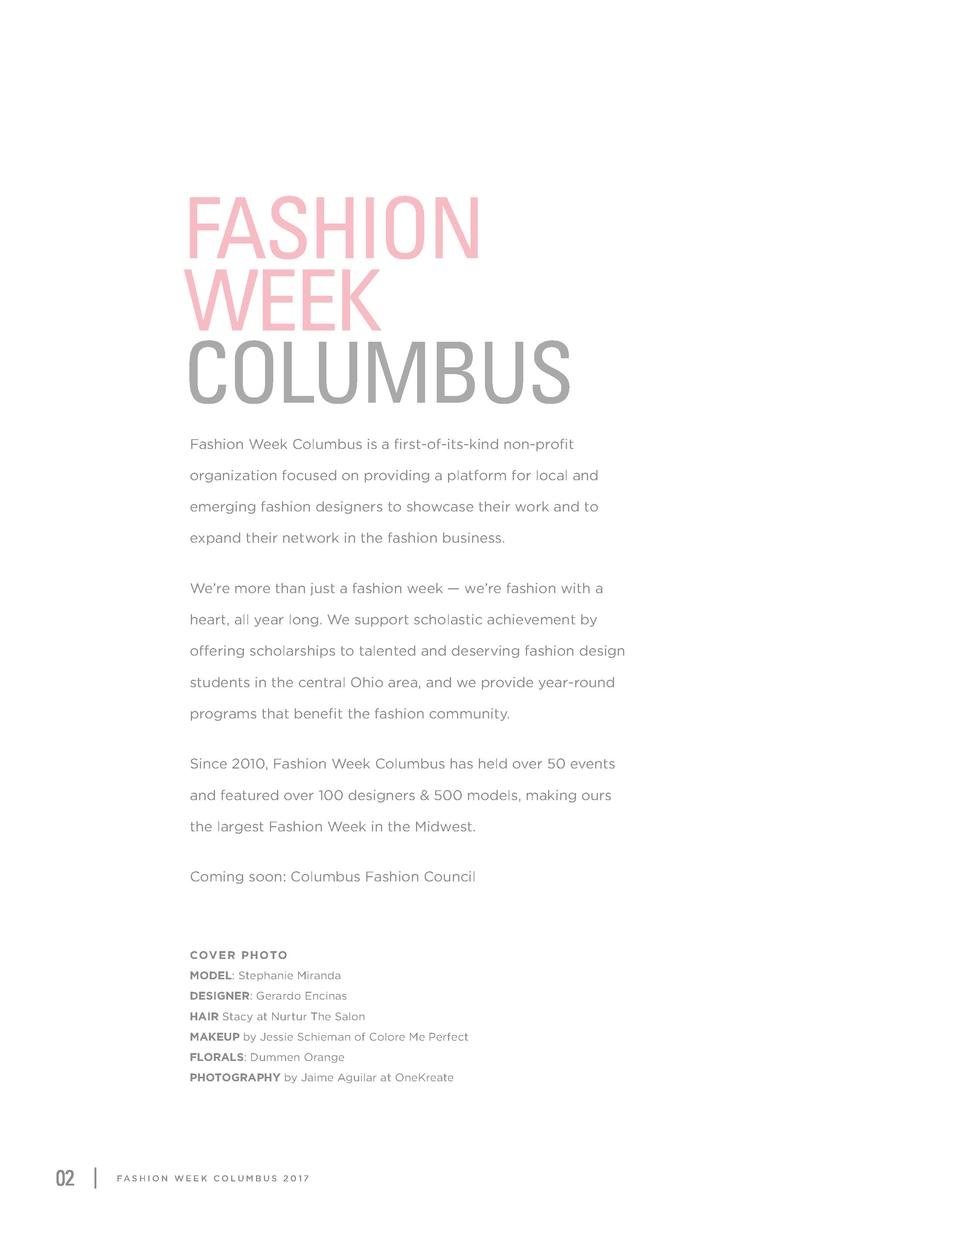 FASHION WEEK COLUMBUS Fashion Week Columbus is a first-of-its-kind non-profit organization focused on providing a platform...